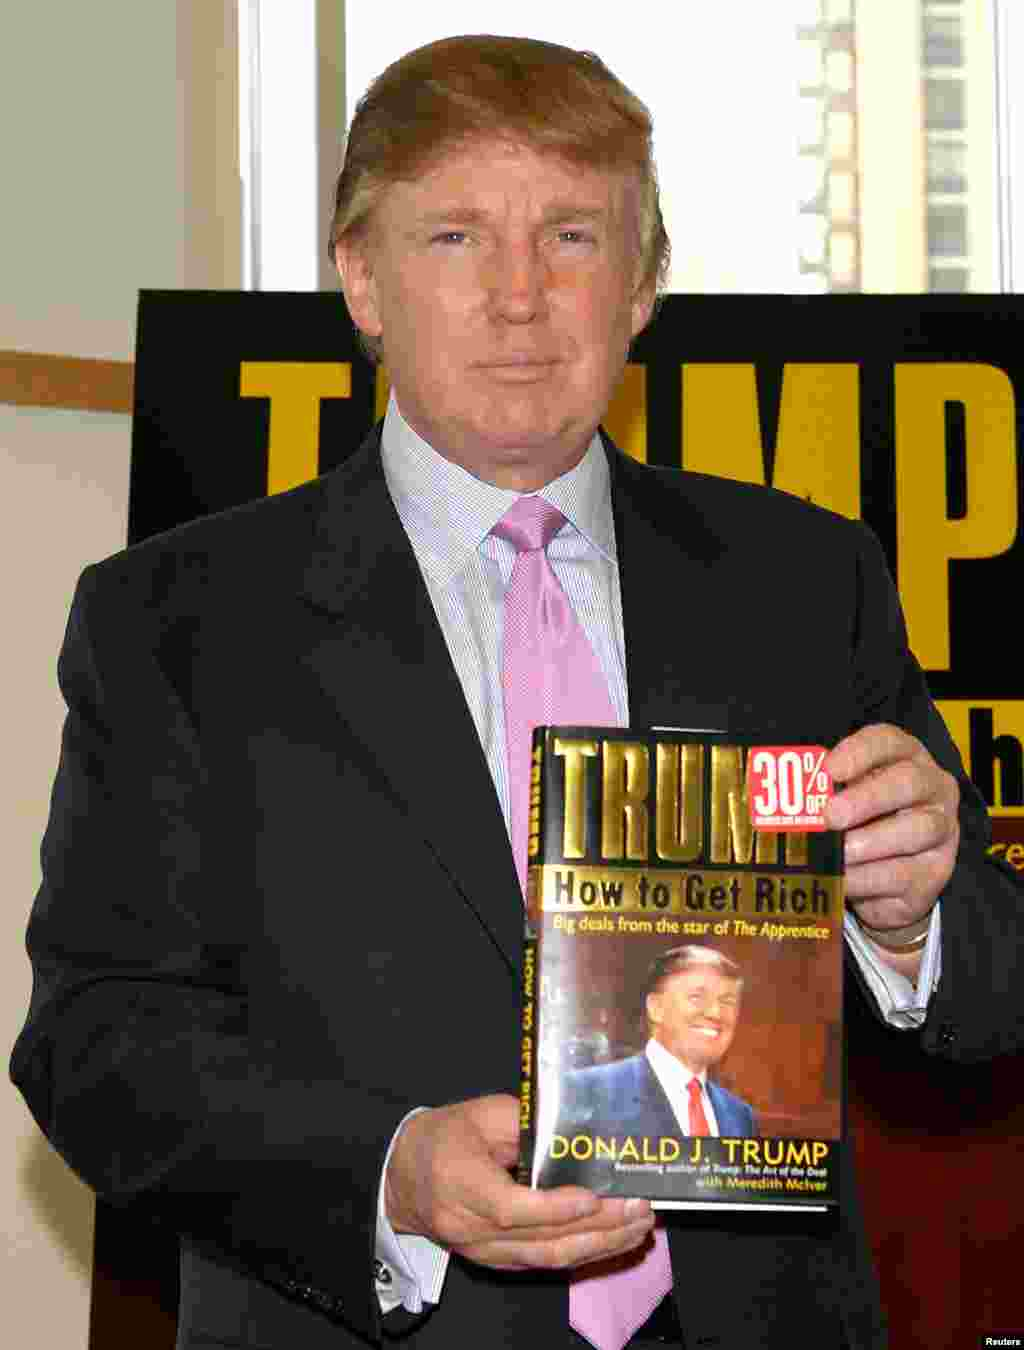 Trump holds a copy of his book, How To Get Rich, in 2004. His 1987 book, The Art Of The Deal, was a best seller that increased his fame.